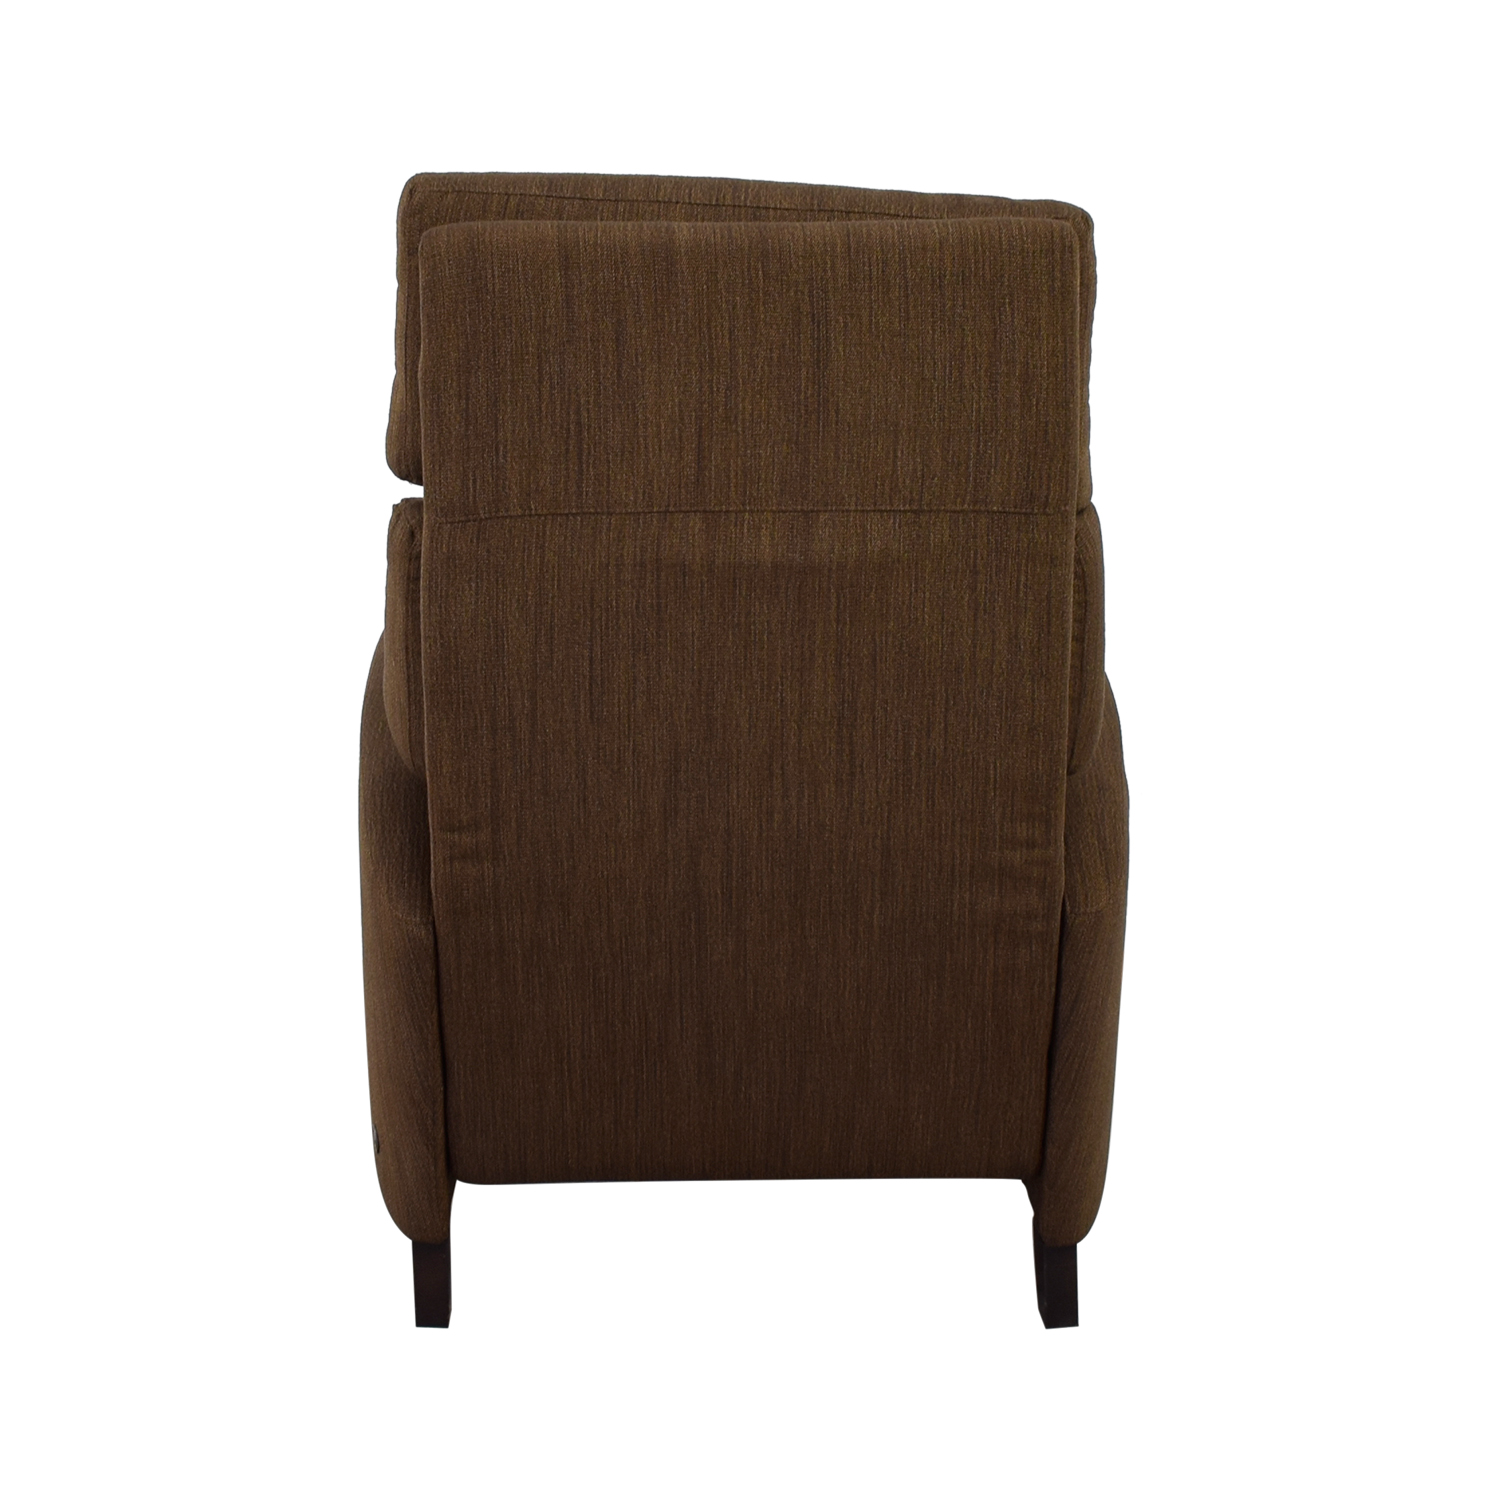 shop American Leather Brown Tweed Electric Recliner Chair American Leather Sofas